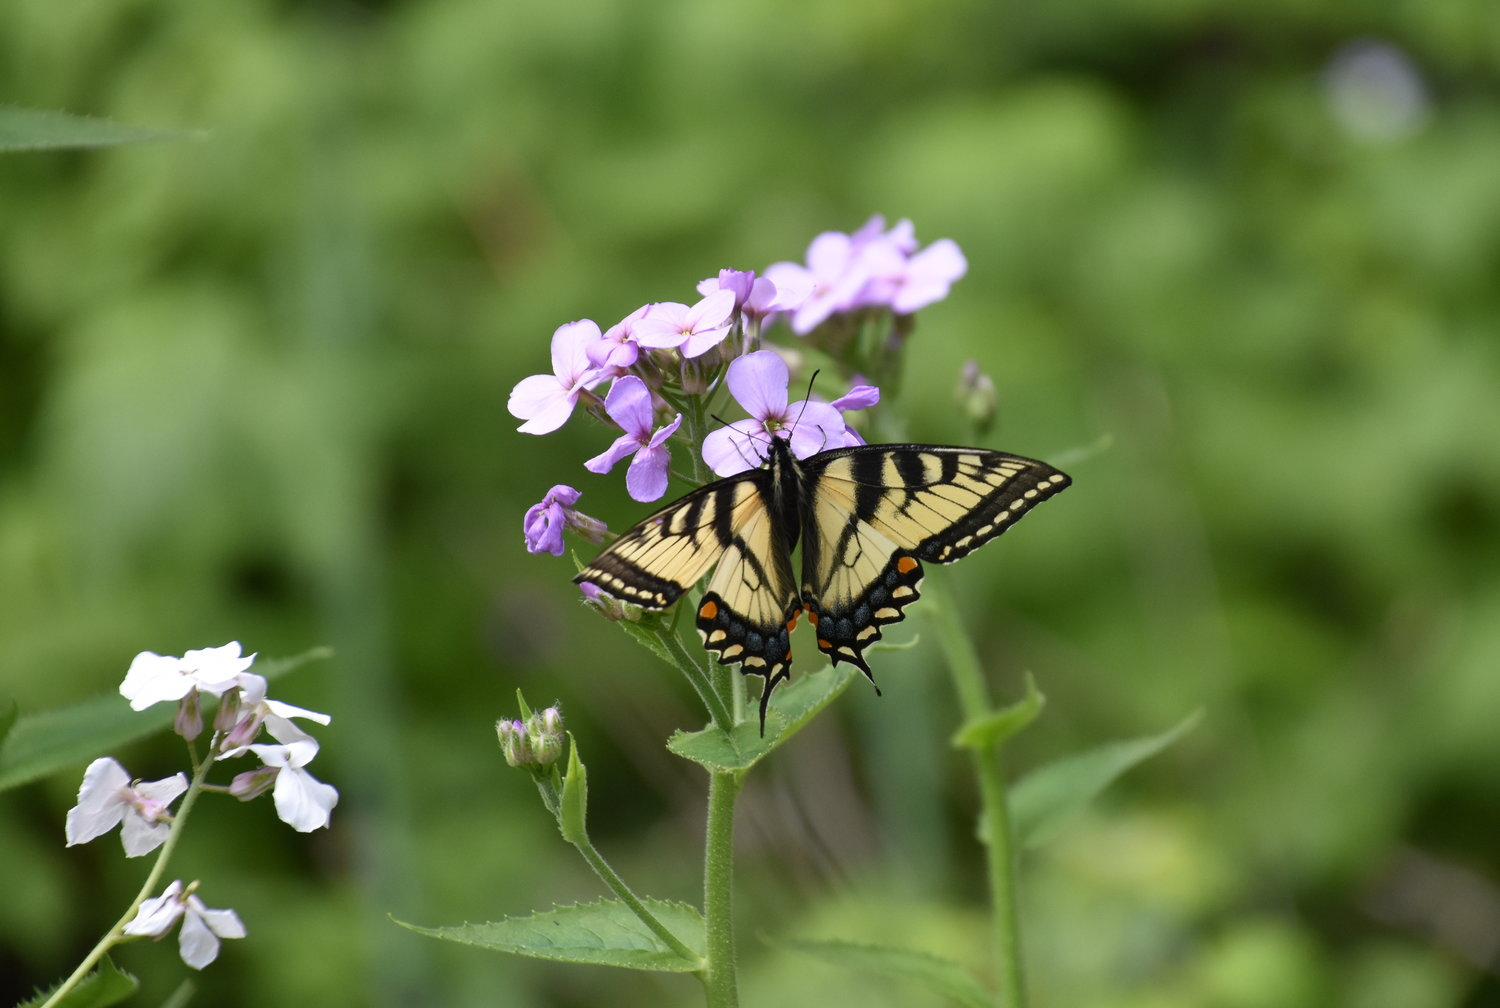 Flower power! An Eastern tiger swallowtail butterfly seeks nectar from the purple flowers of Dame's Rockets now blooming in the Upper Delaware River region. Adults also favor the nectar of milkweed blossoms and Joe-Pye Weed during the summer.